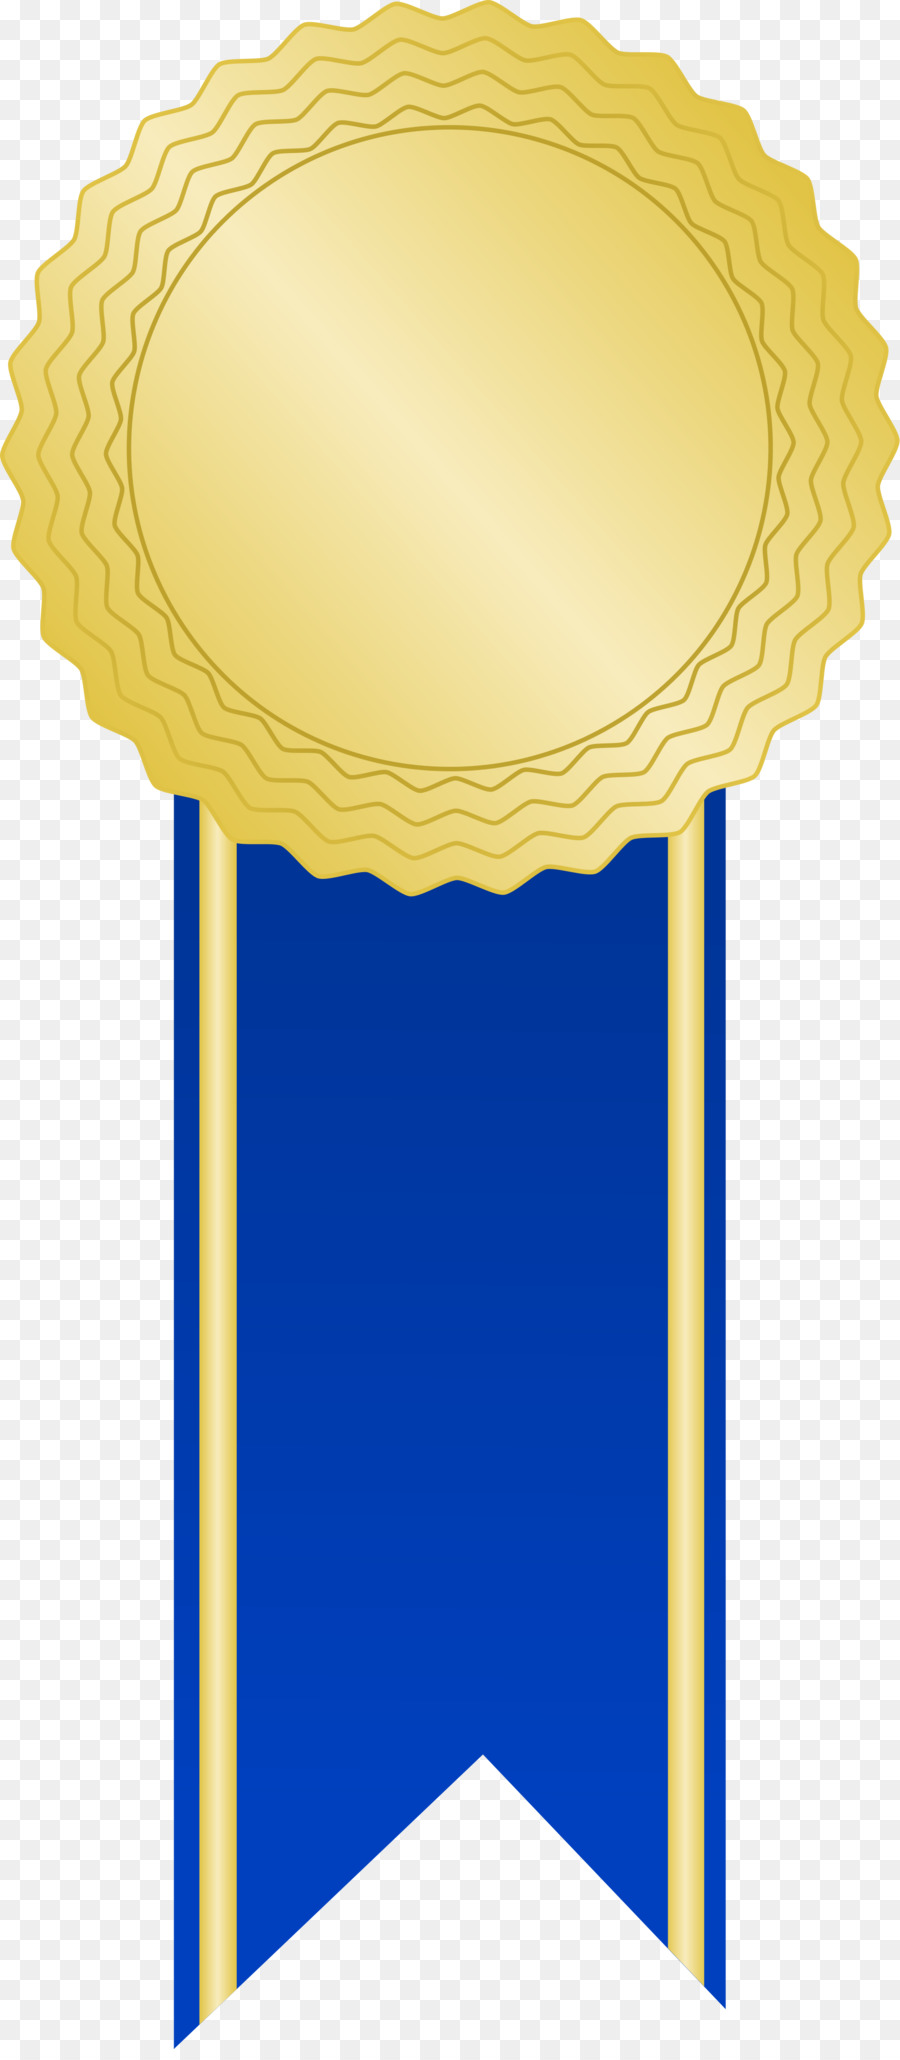 Gold ribbon background award. Medal clipart blue